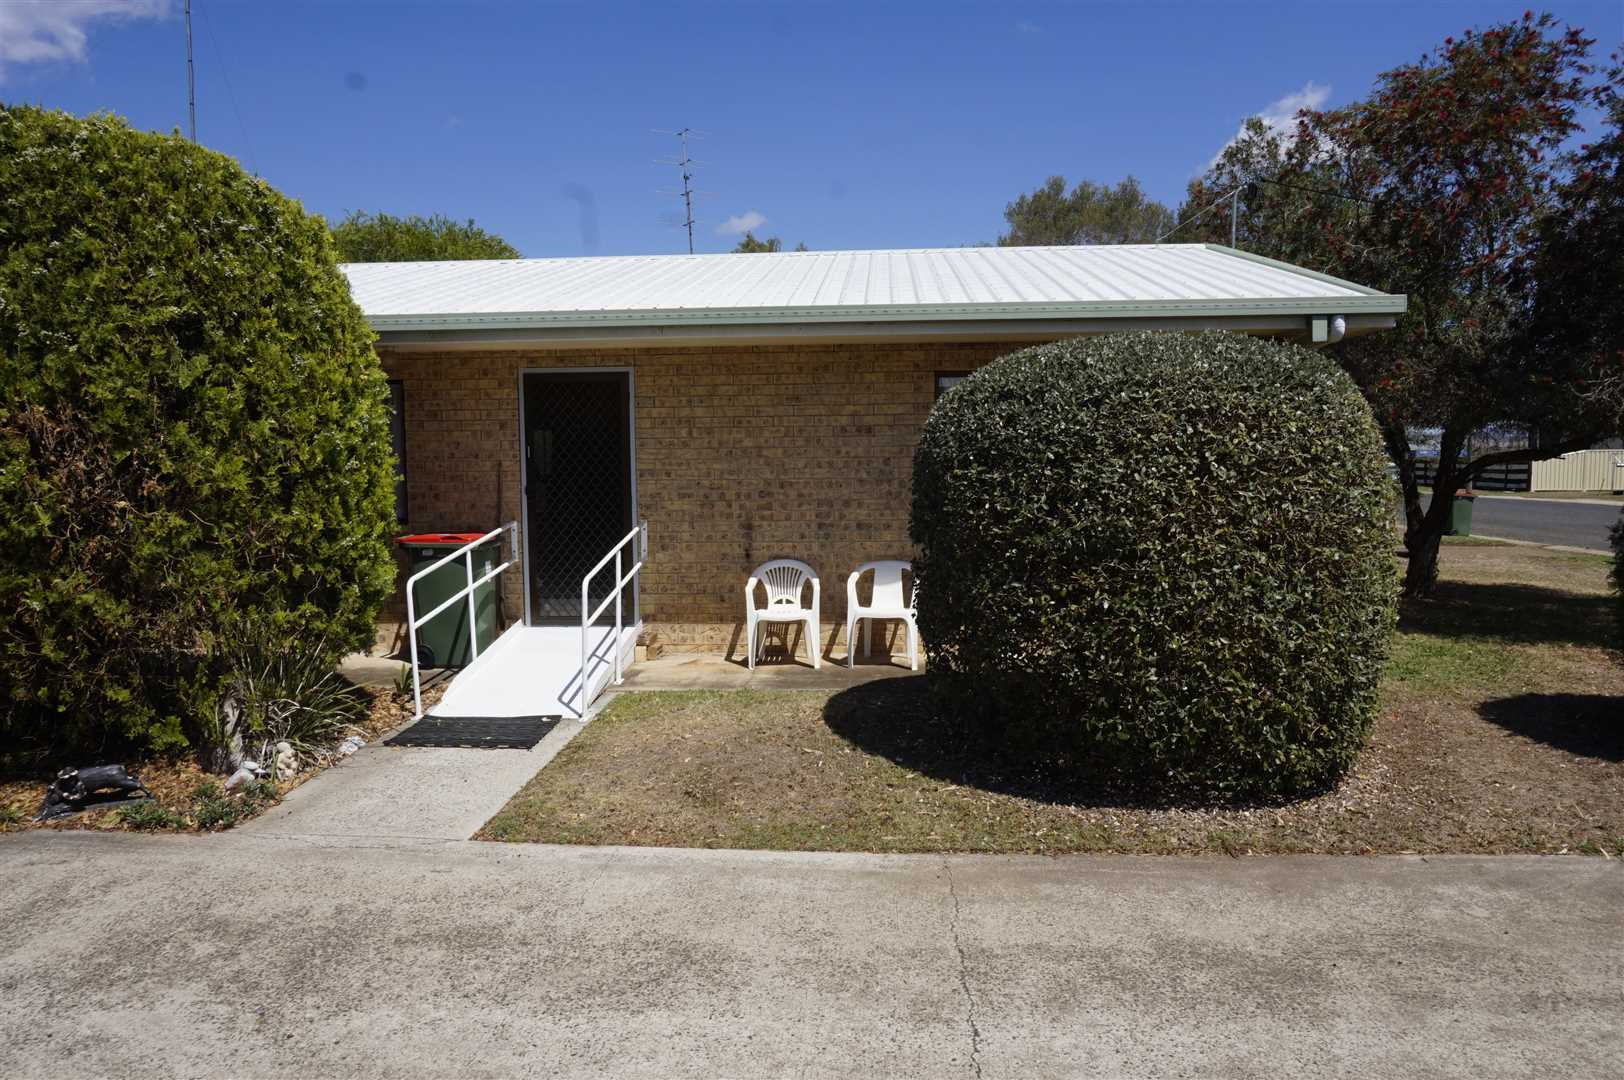 Investment Unit or Settle into Clifton with a Budget Buy